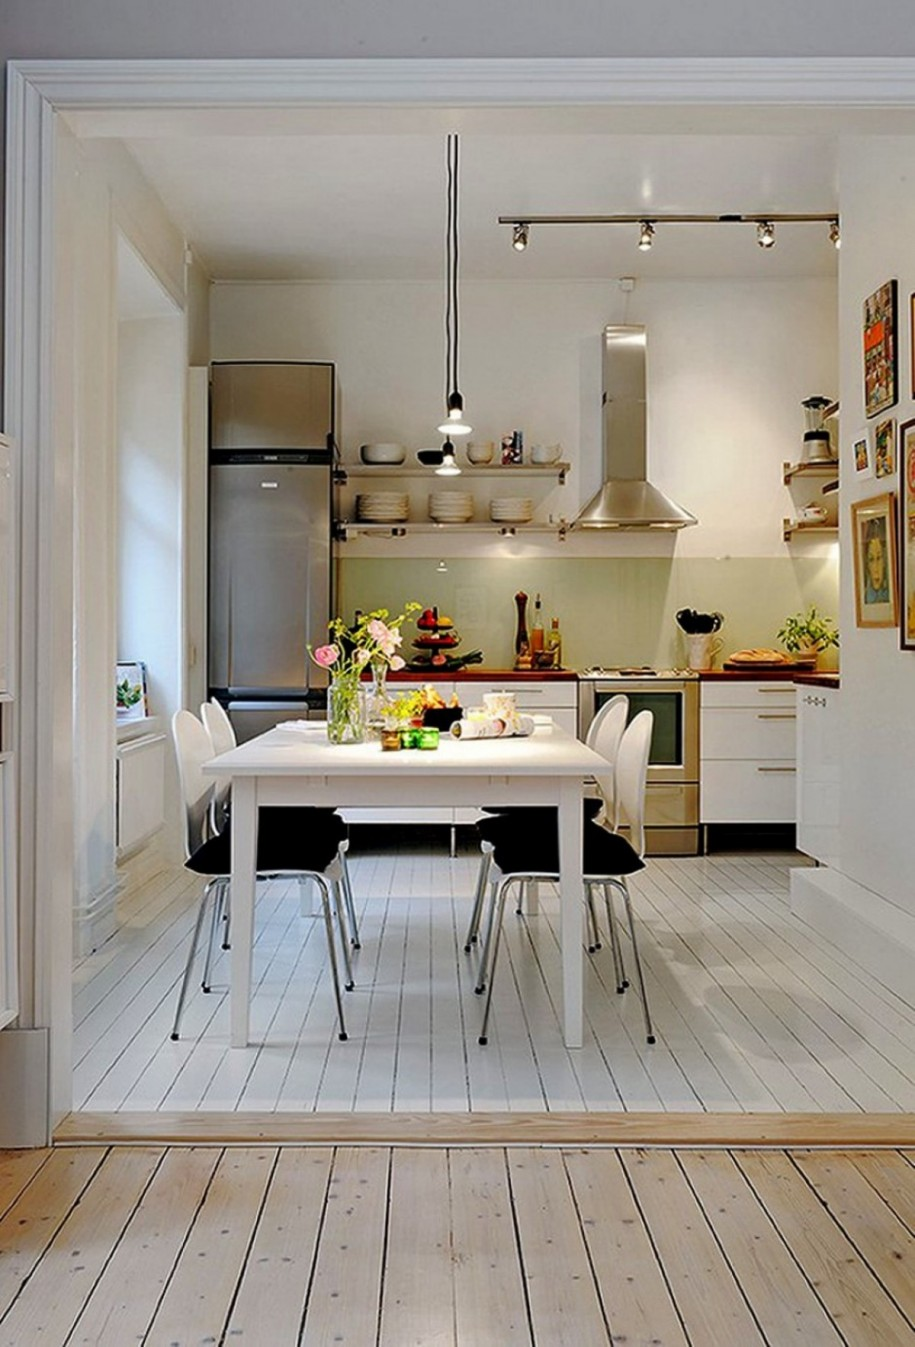 Small kitchen design ideas and flooring